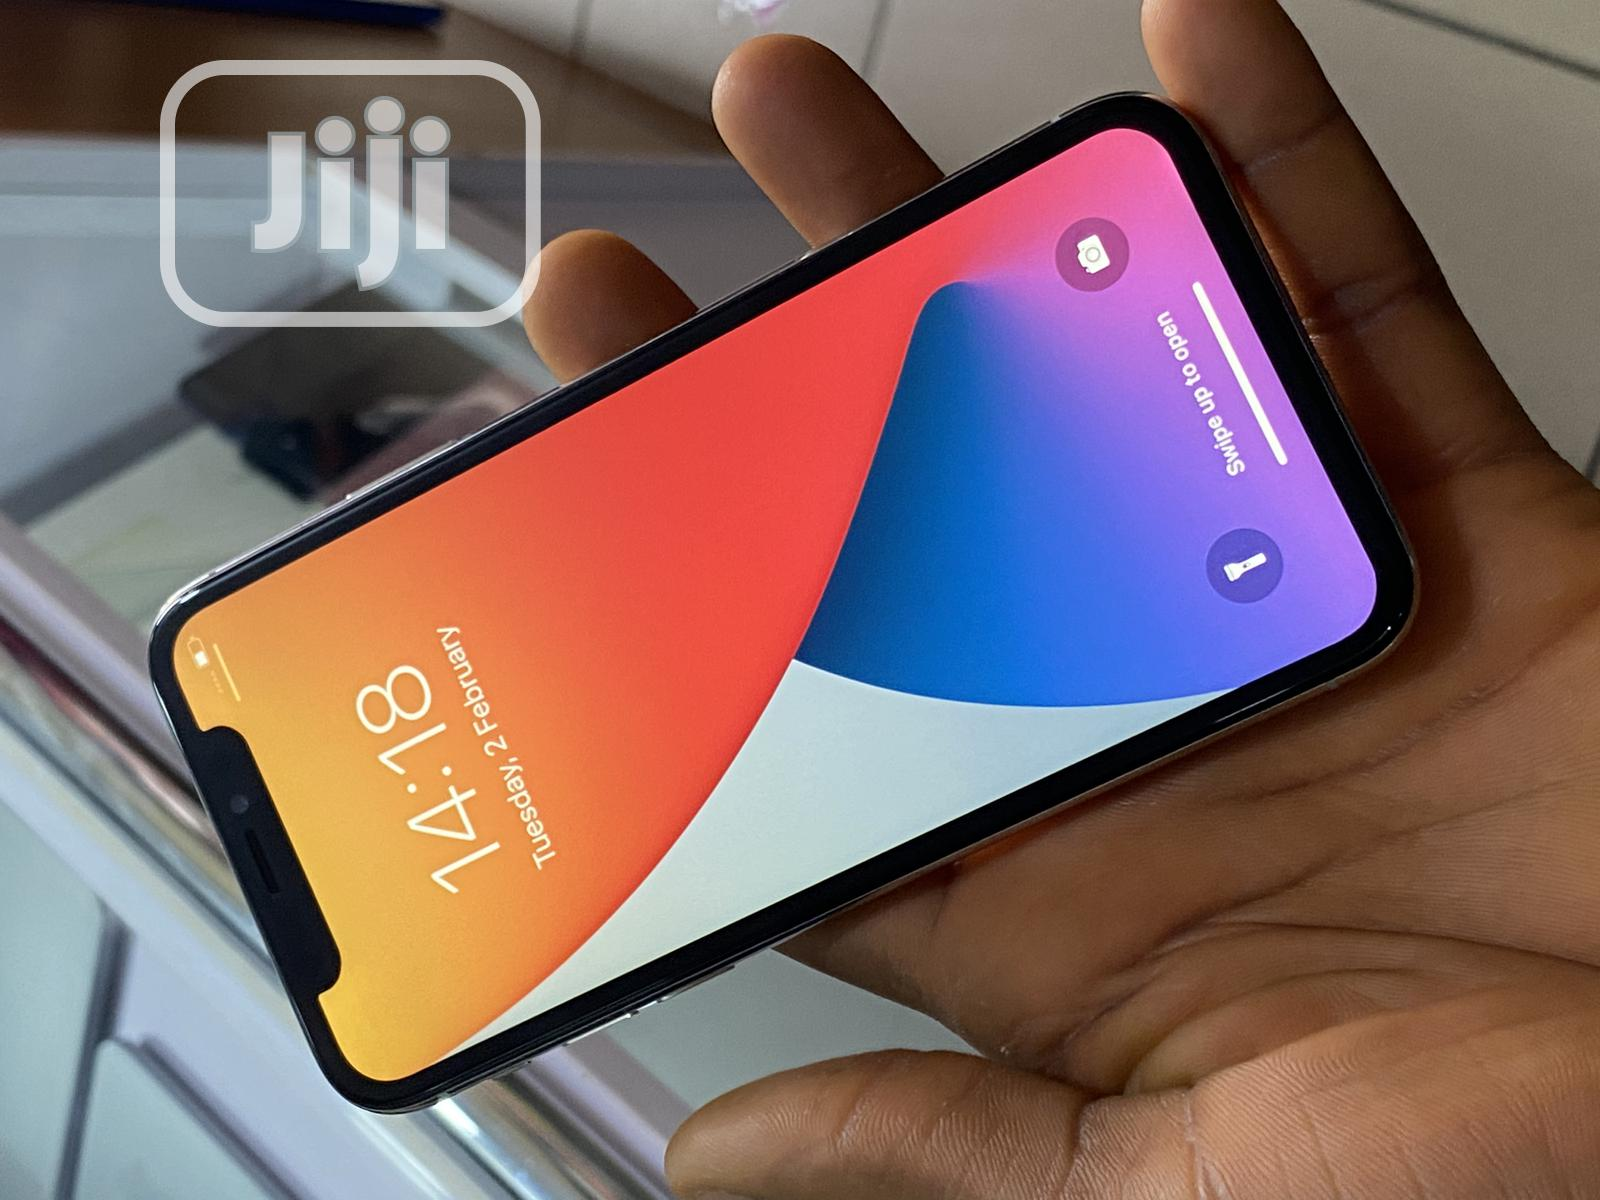 Apple iPhone X 64 GB Silver   Mobile Phones for sale in Wuse 2, Abuja (FCT) State, Nigeria